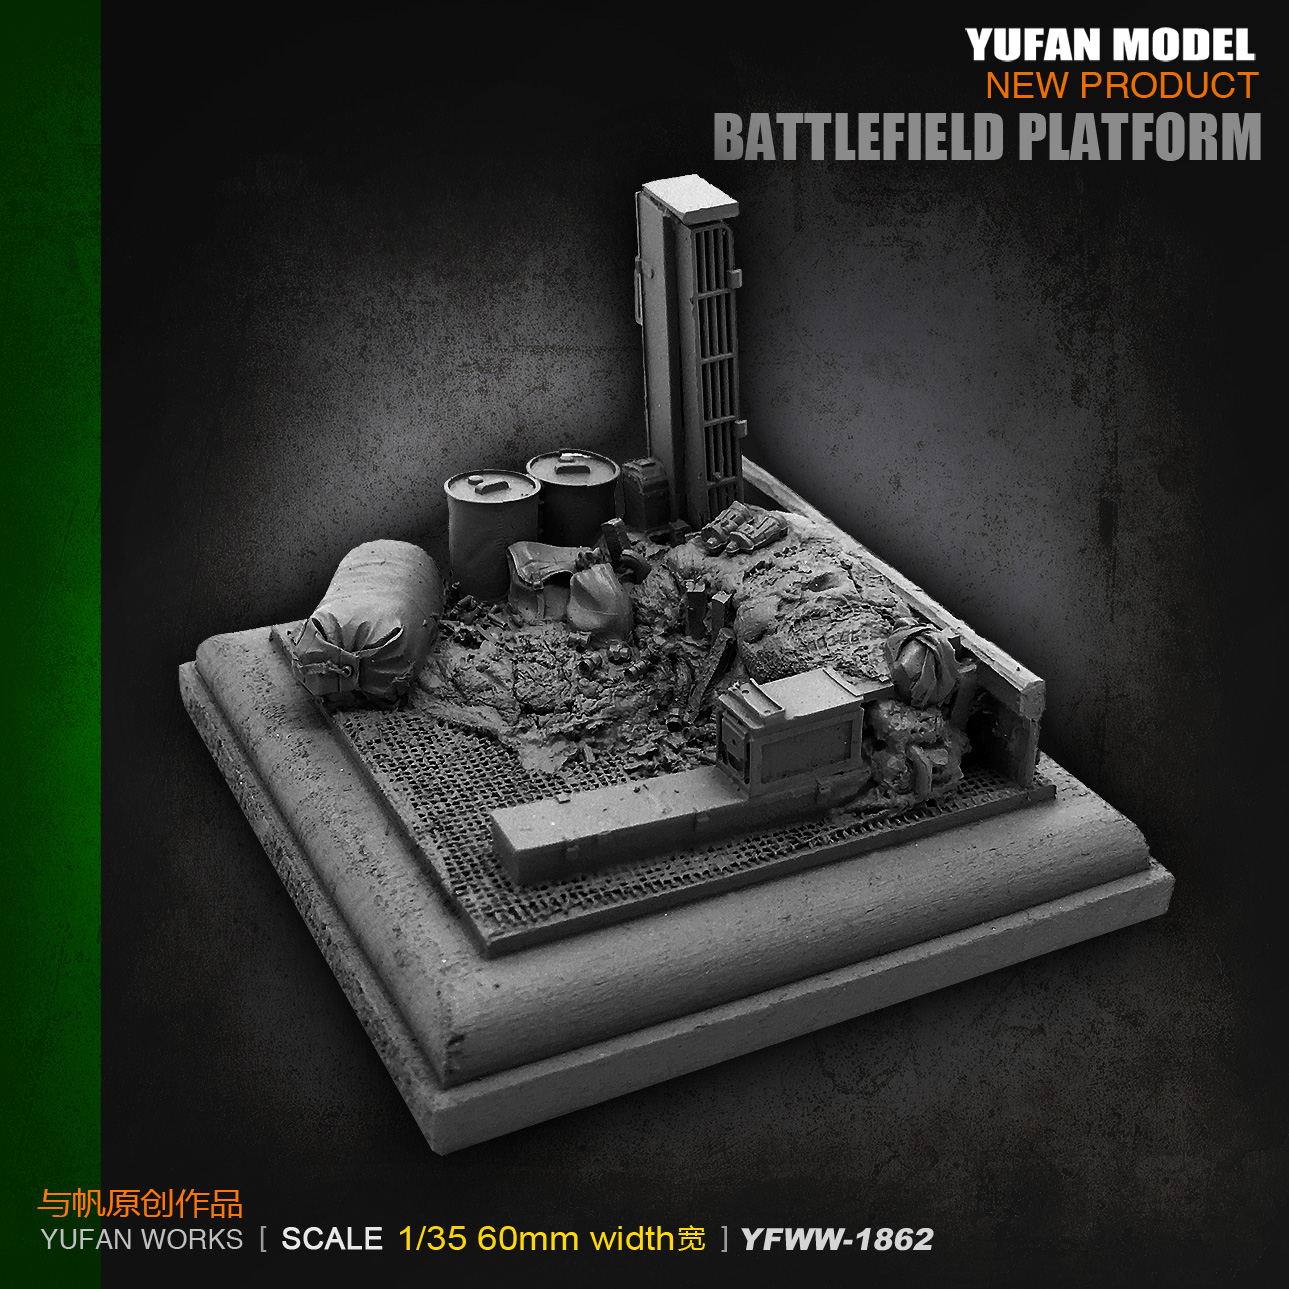 Yufan Model  Original 1/35 60mm Wide Resin Soldier Platform YFWW35-1862